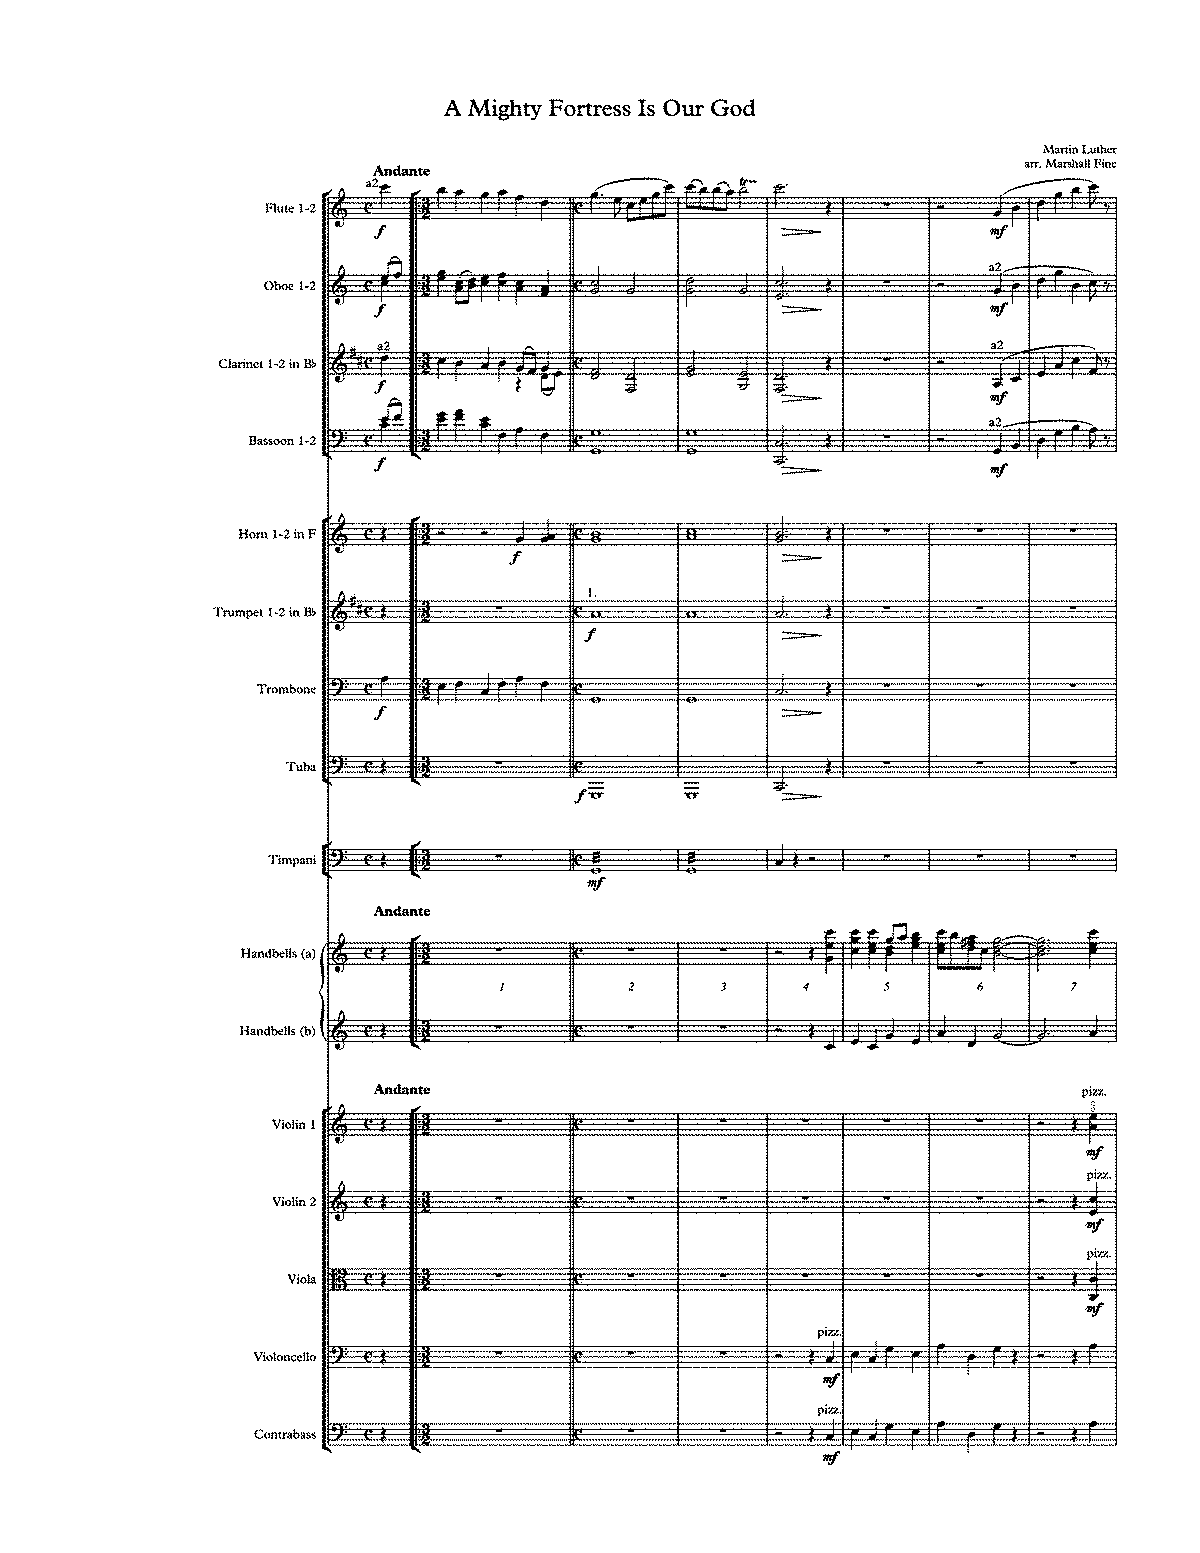 PMLP550711-Handbell Mighty Fortress - score and parts.pdf